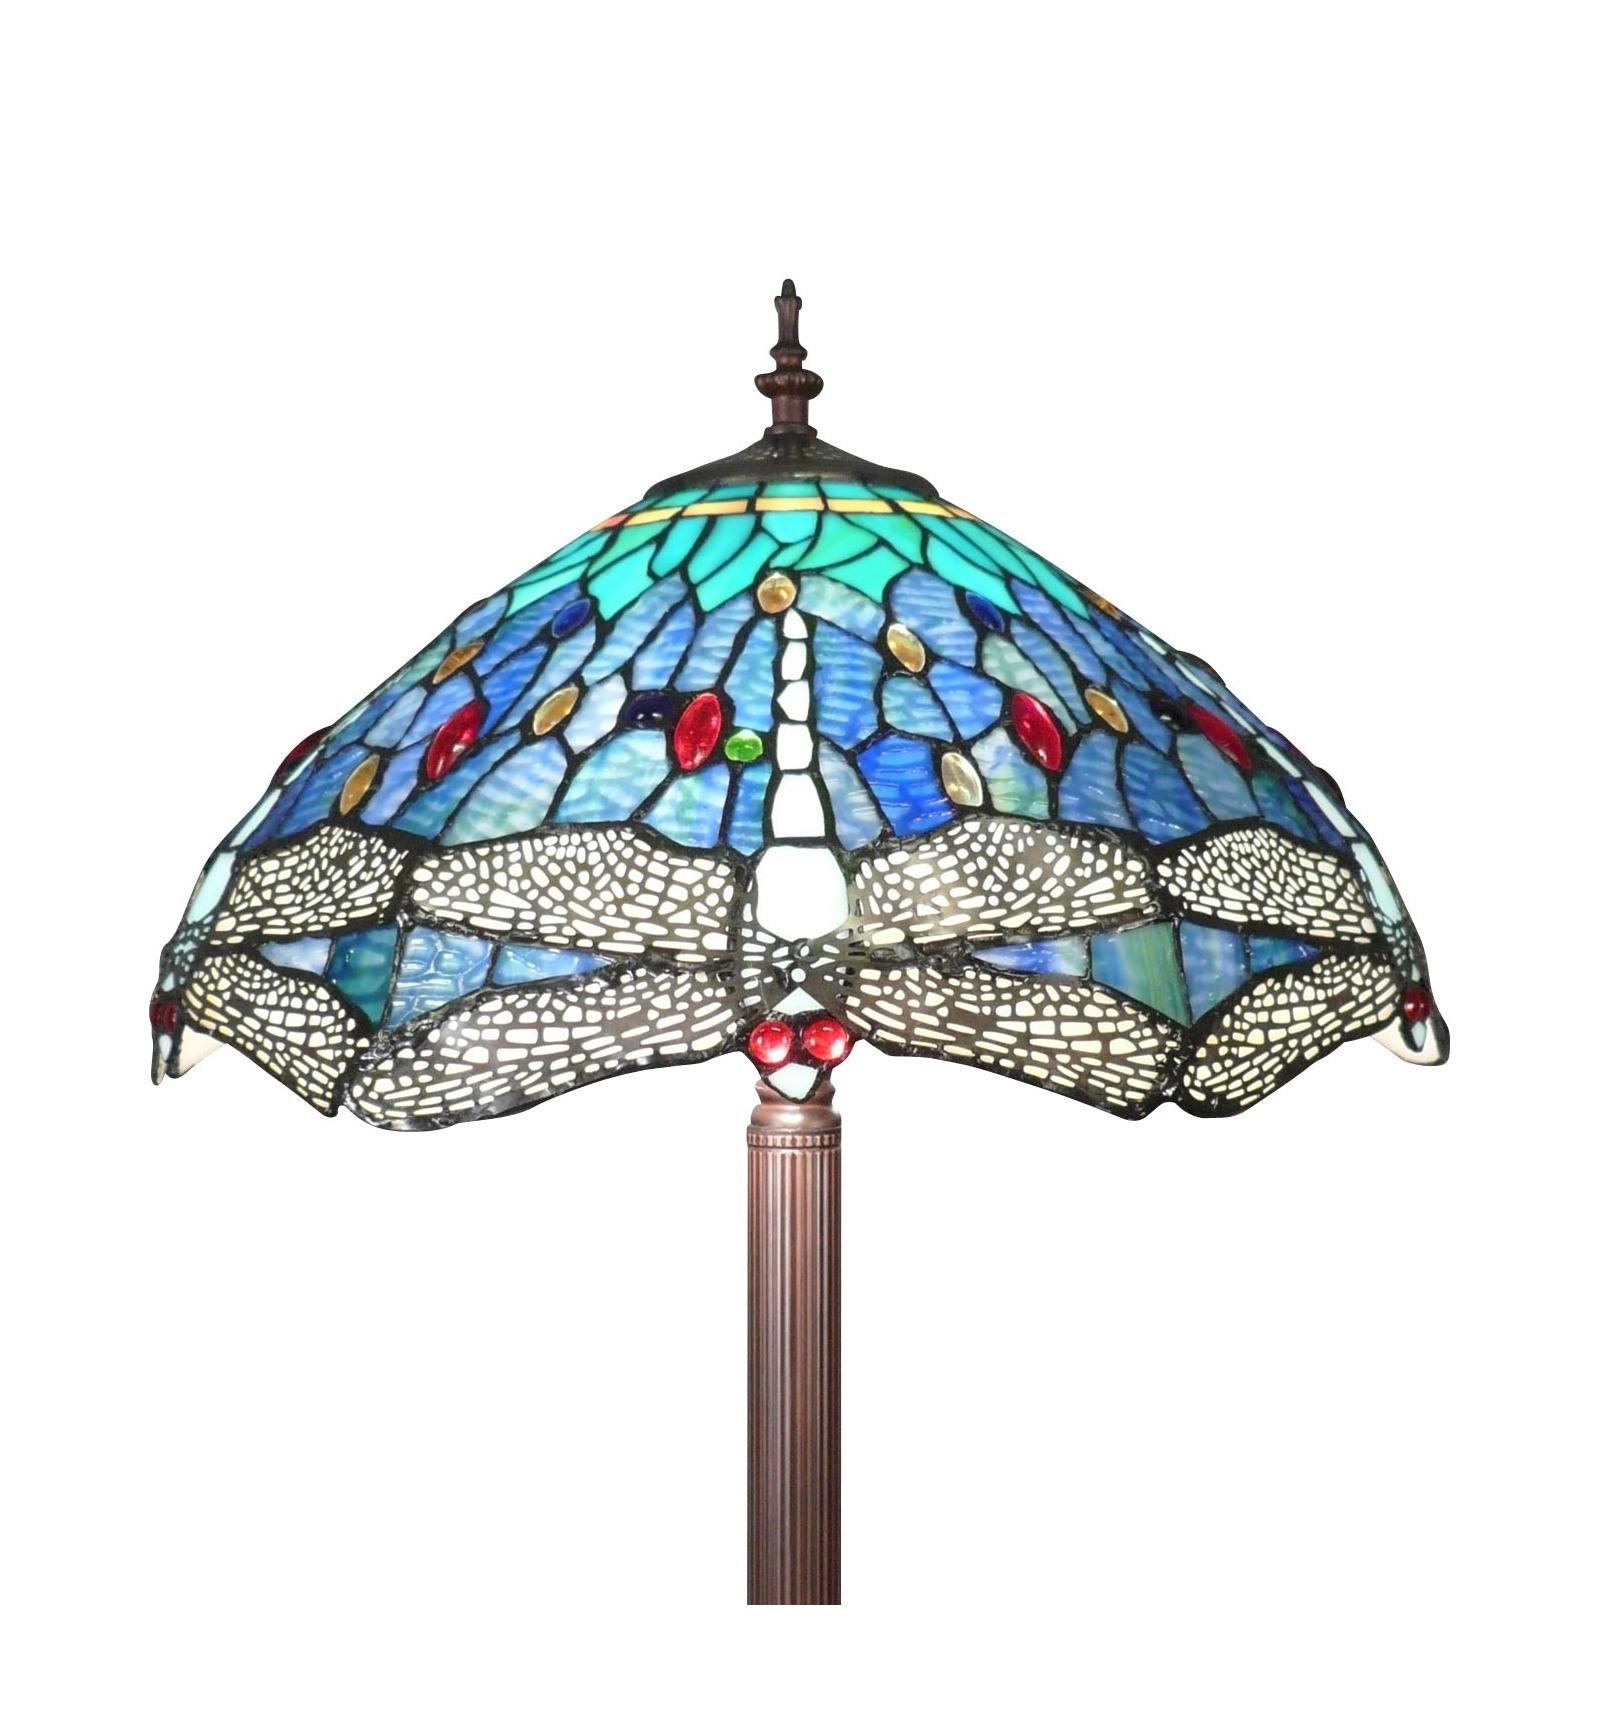 Tiffany Floor Lamp With A Decoration Of Dragonflies Art Deco Lighting